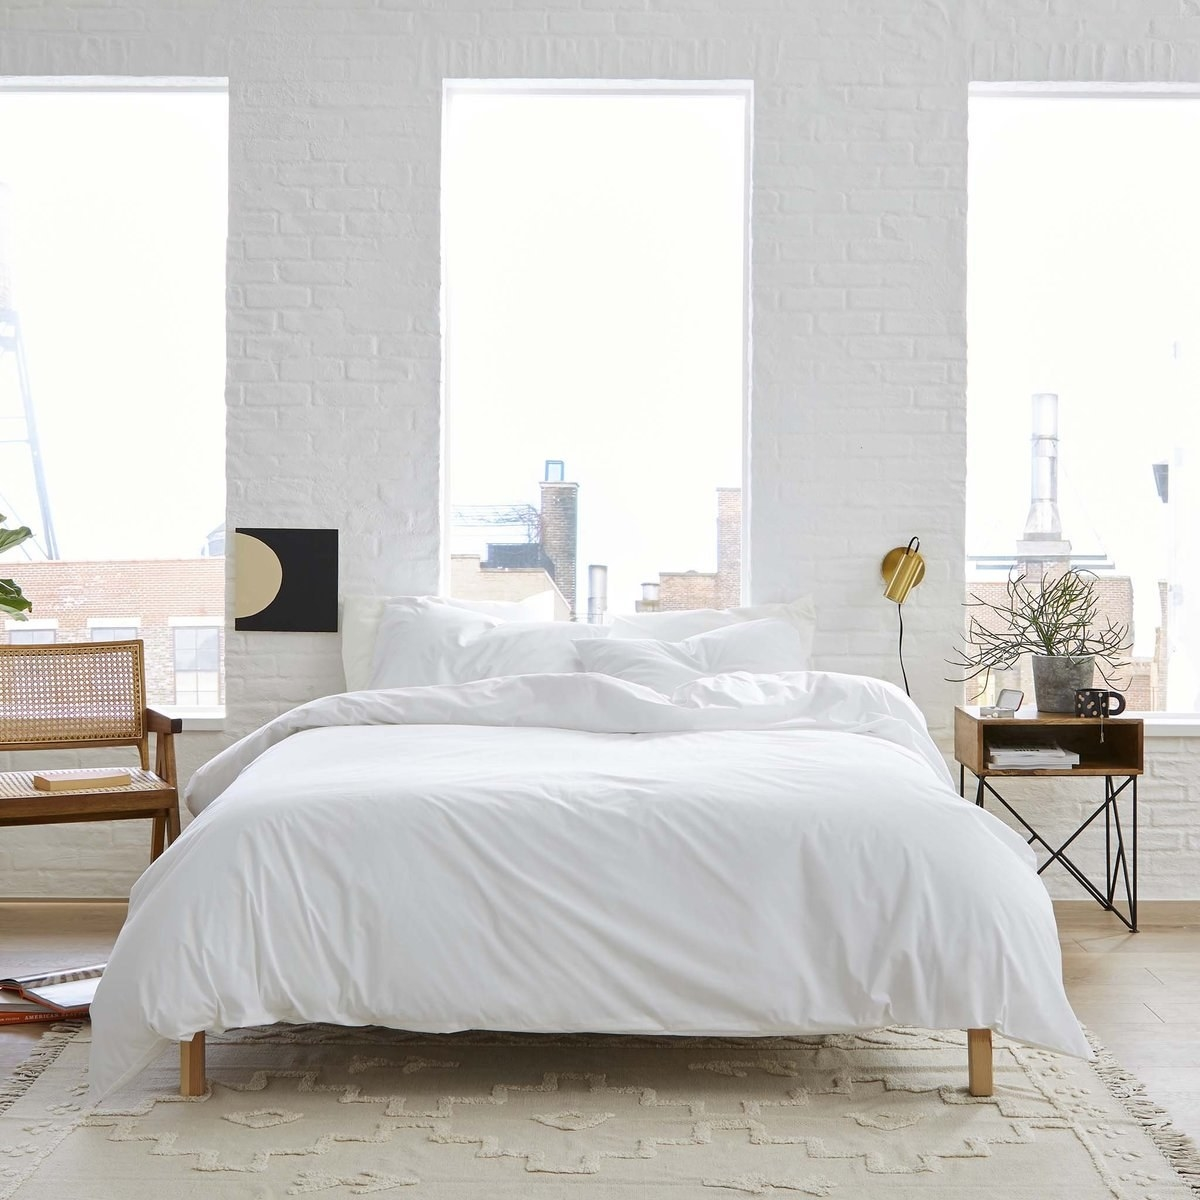 a bedroom with bright windows showcasing a cozy bed with a white comforter and white sheets